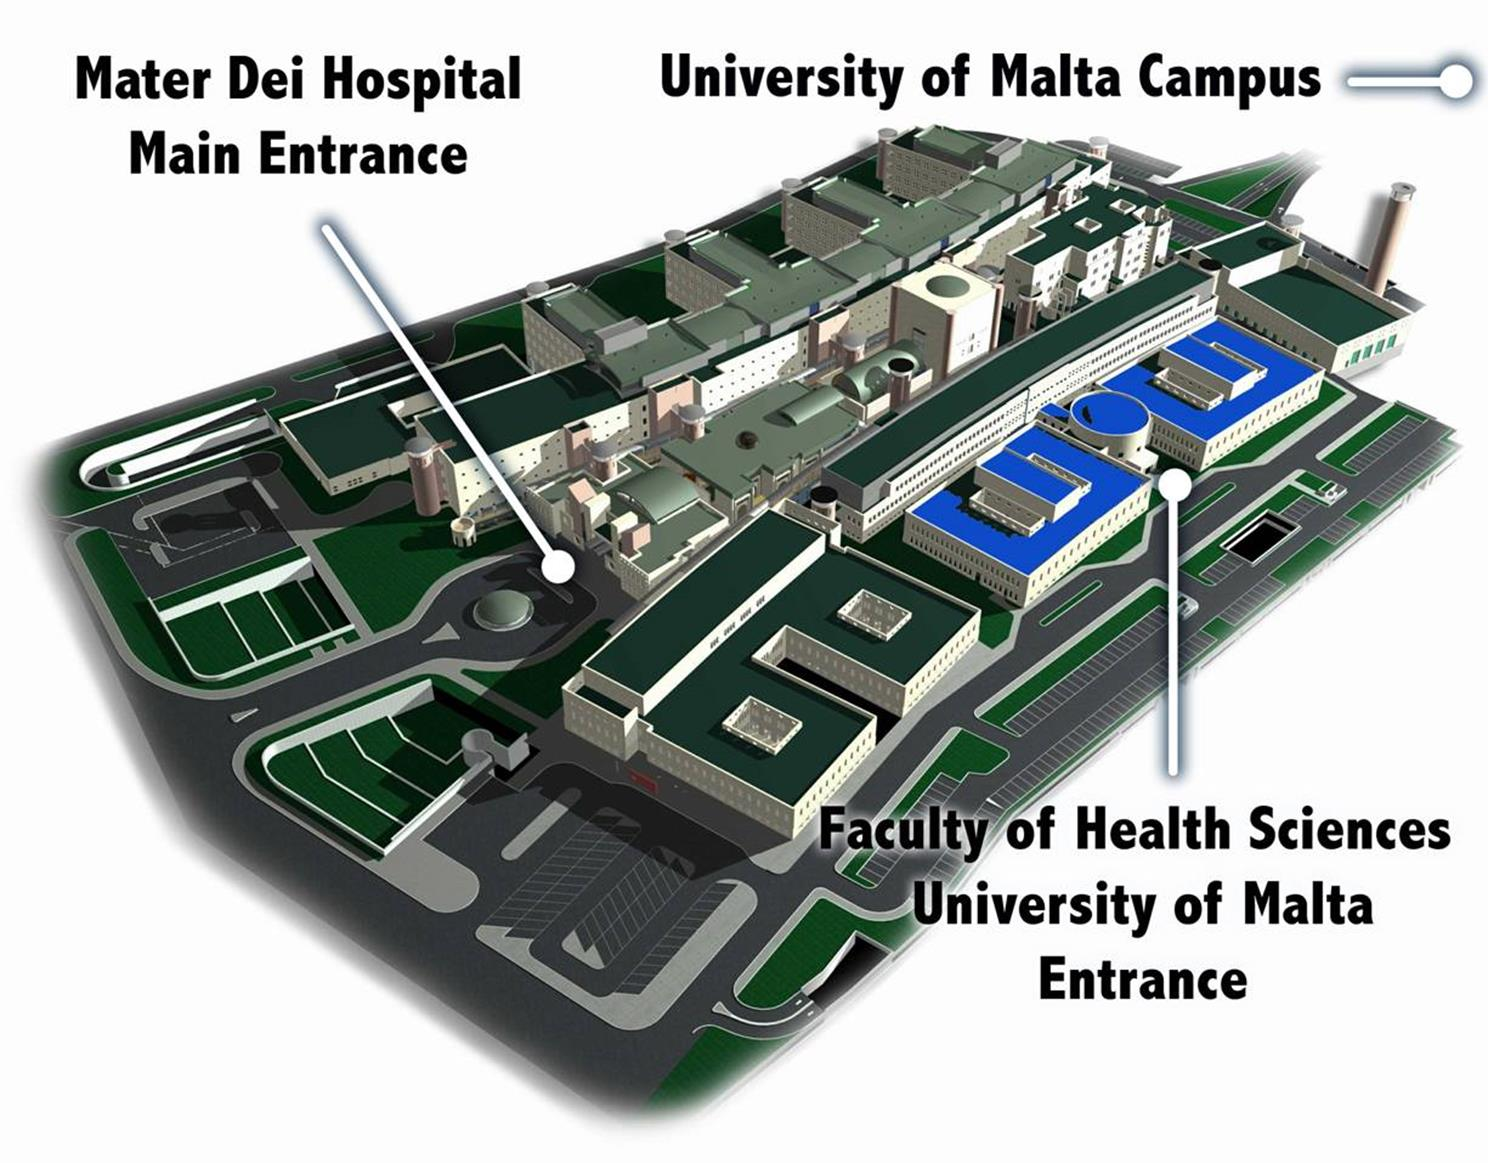 Mater-Dei-Hospital-with-Faculty-of-Medicine